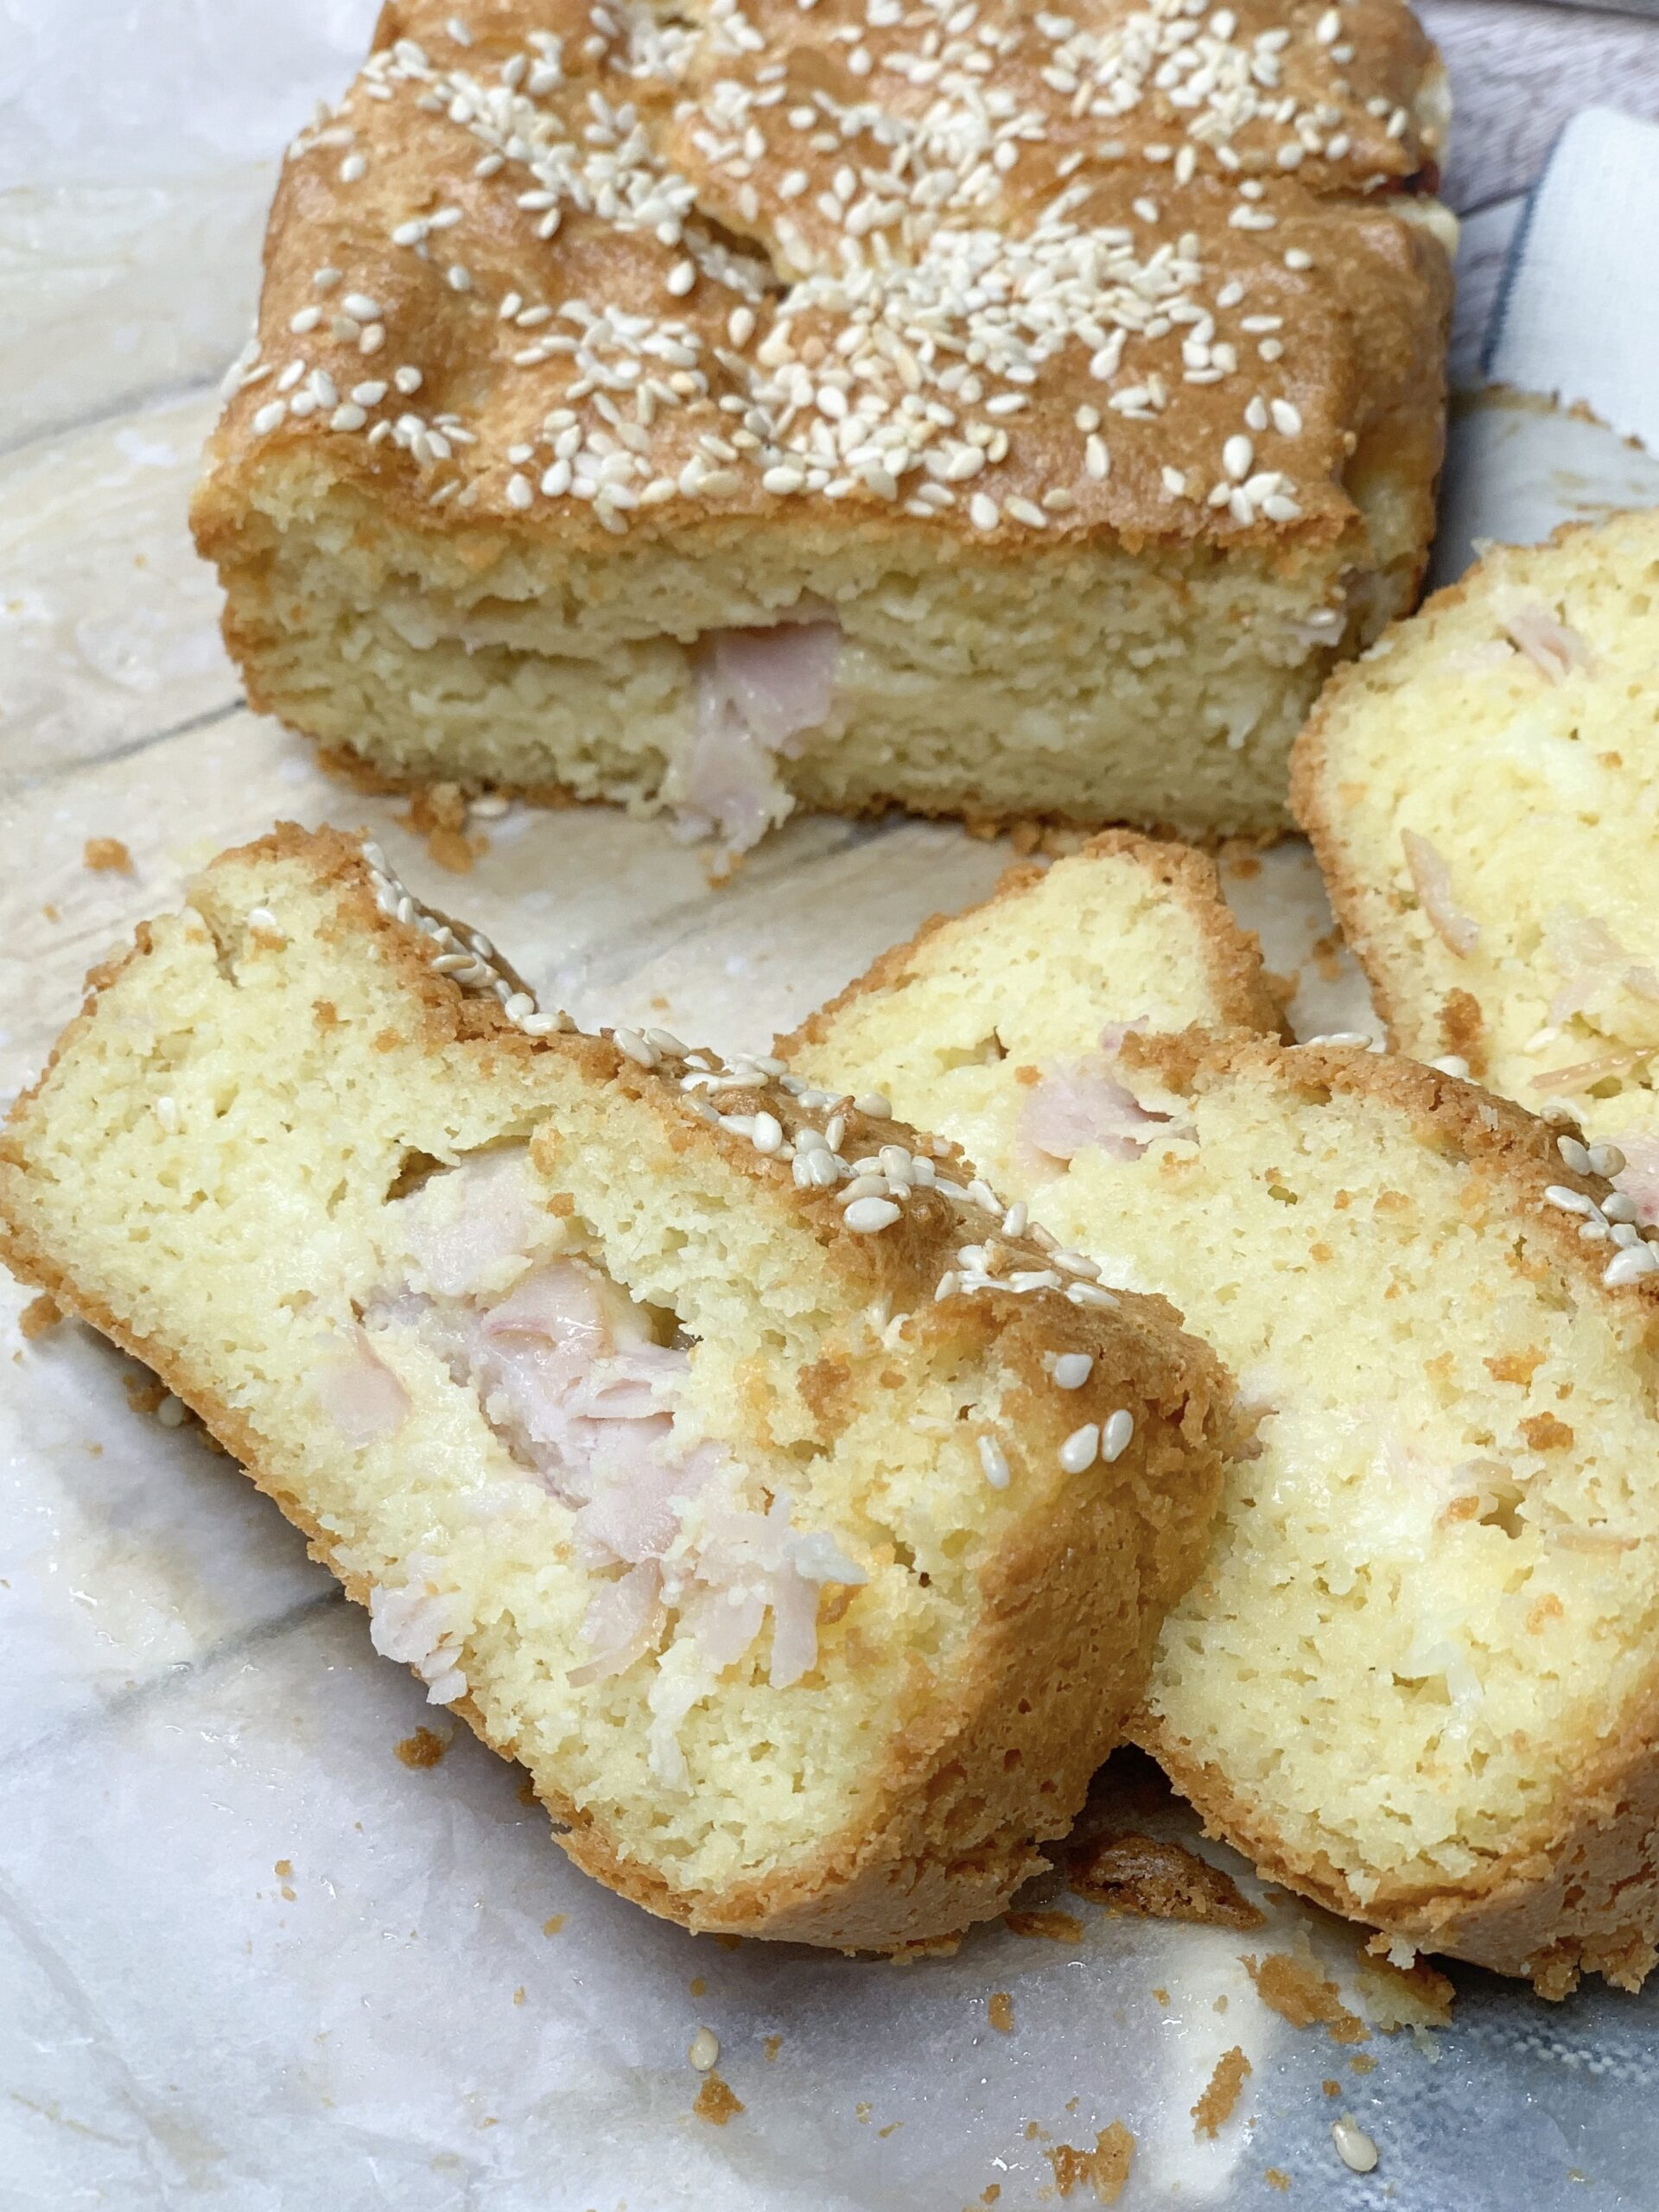 Photo of low carb almond bread with ham and cheese cut in slices